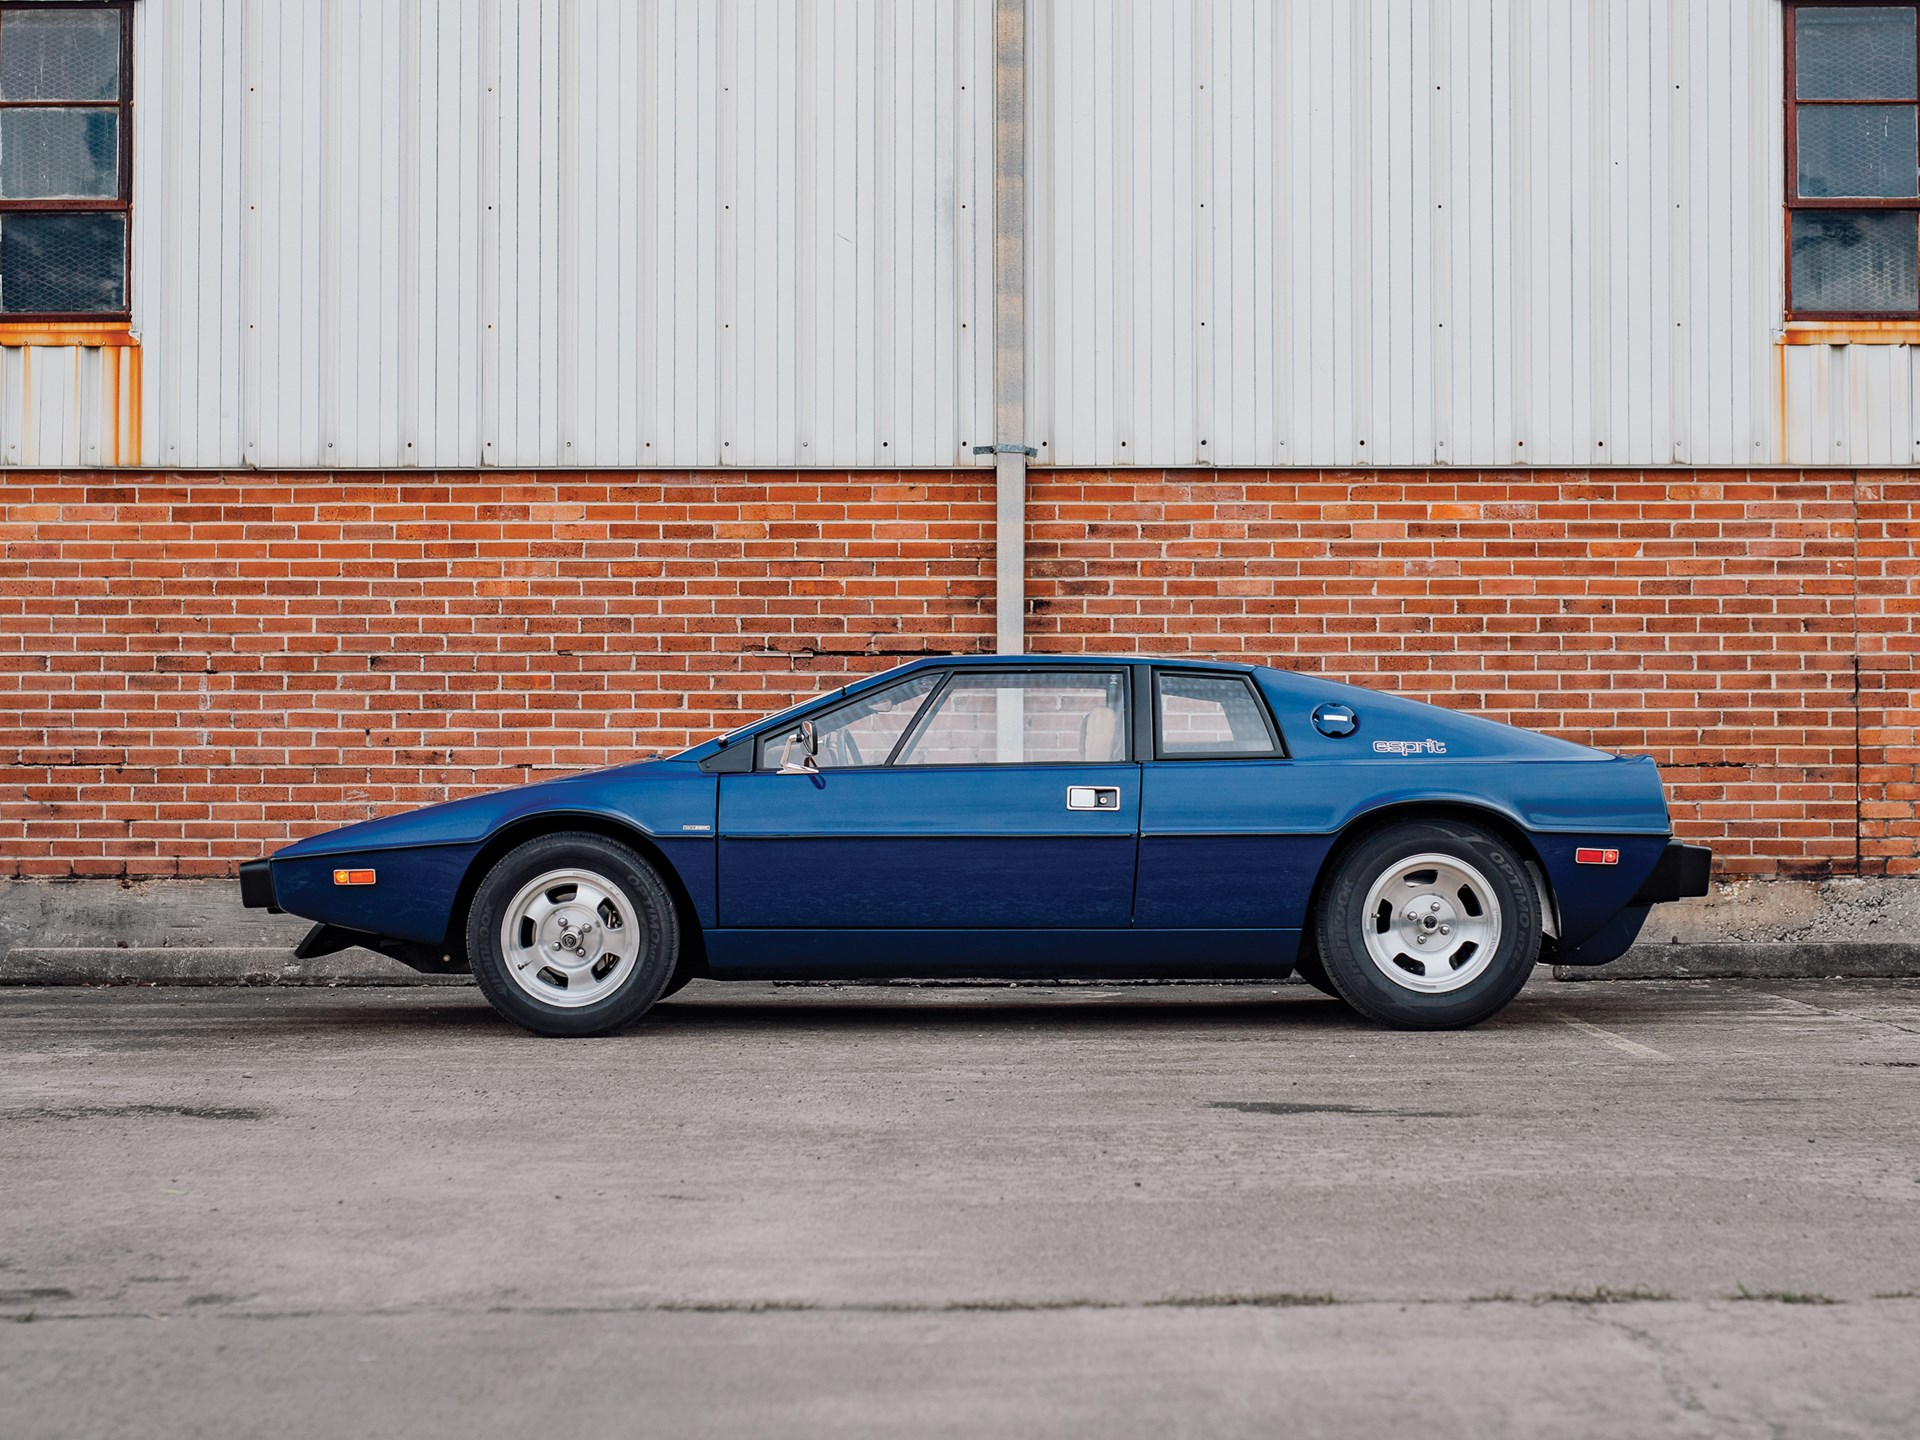 1977 Lotus Esprit Series 1 drivers side